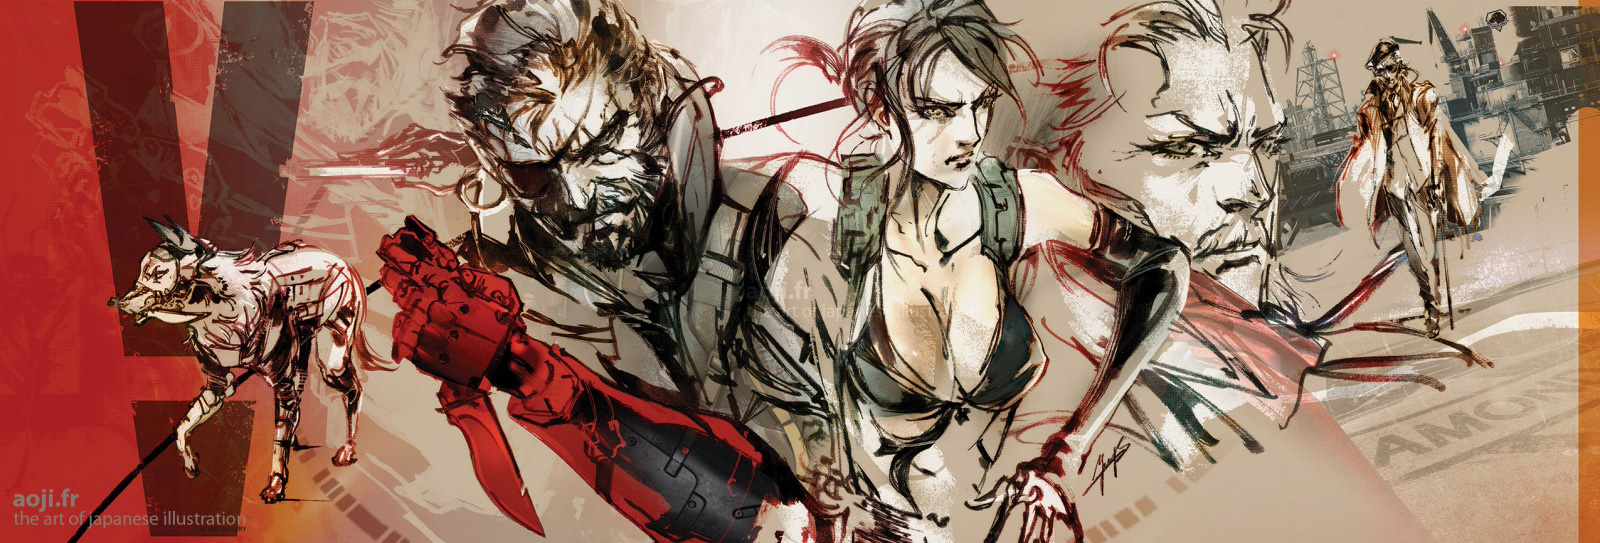 Diamond-Dogs-Shinkawa-Art-of-Japanese-Illustration